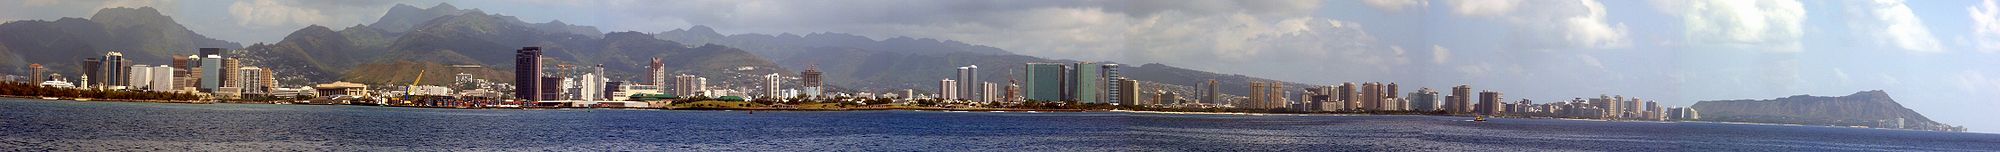 Honolulu waterfront.JPG